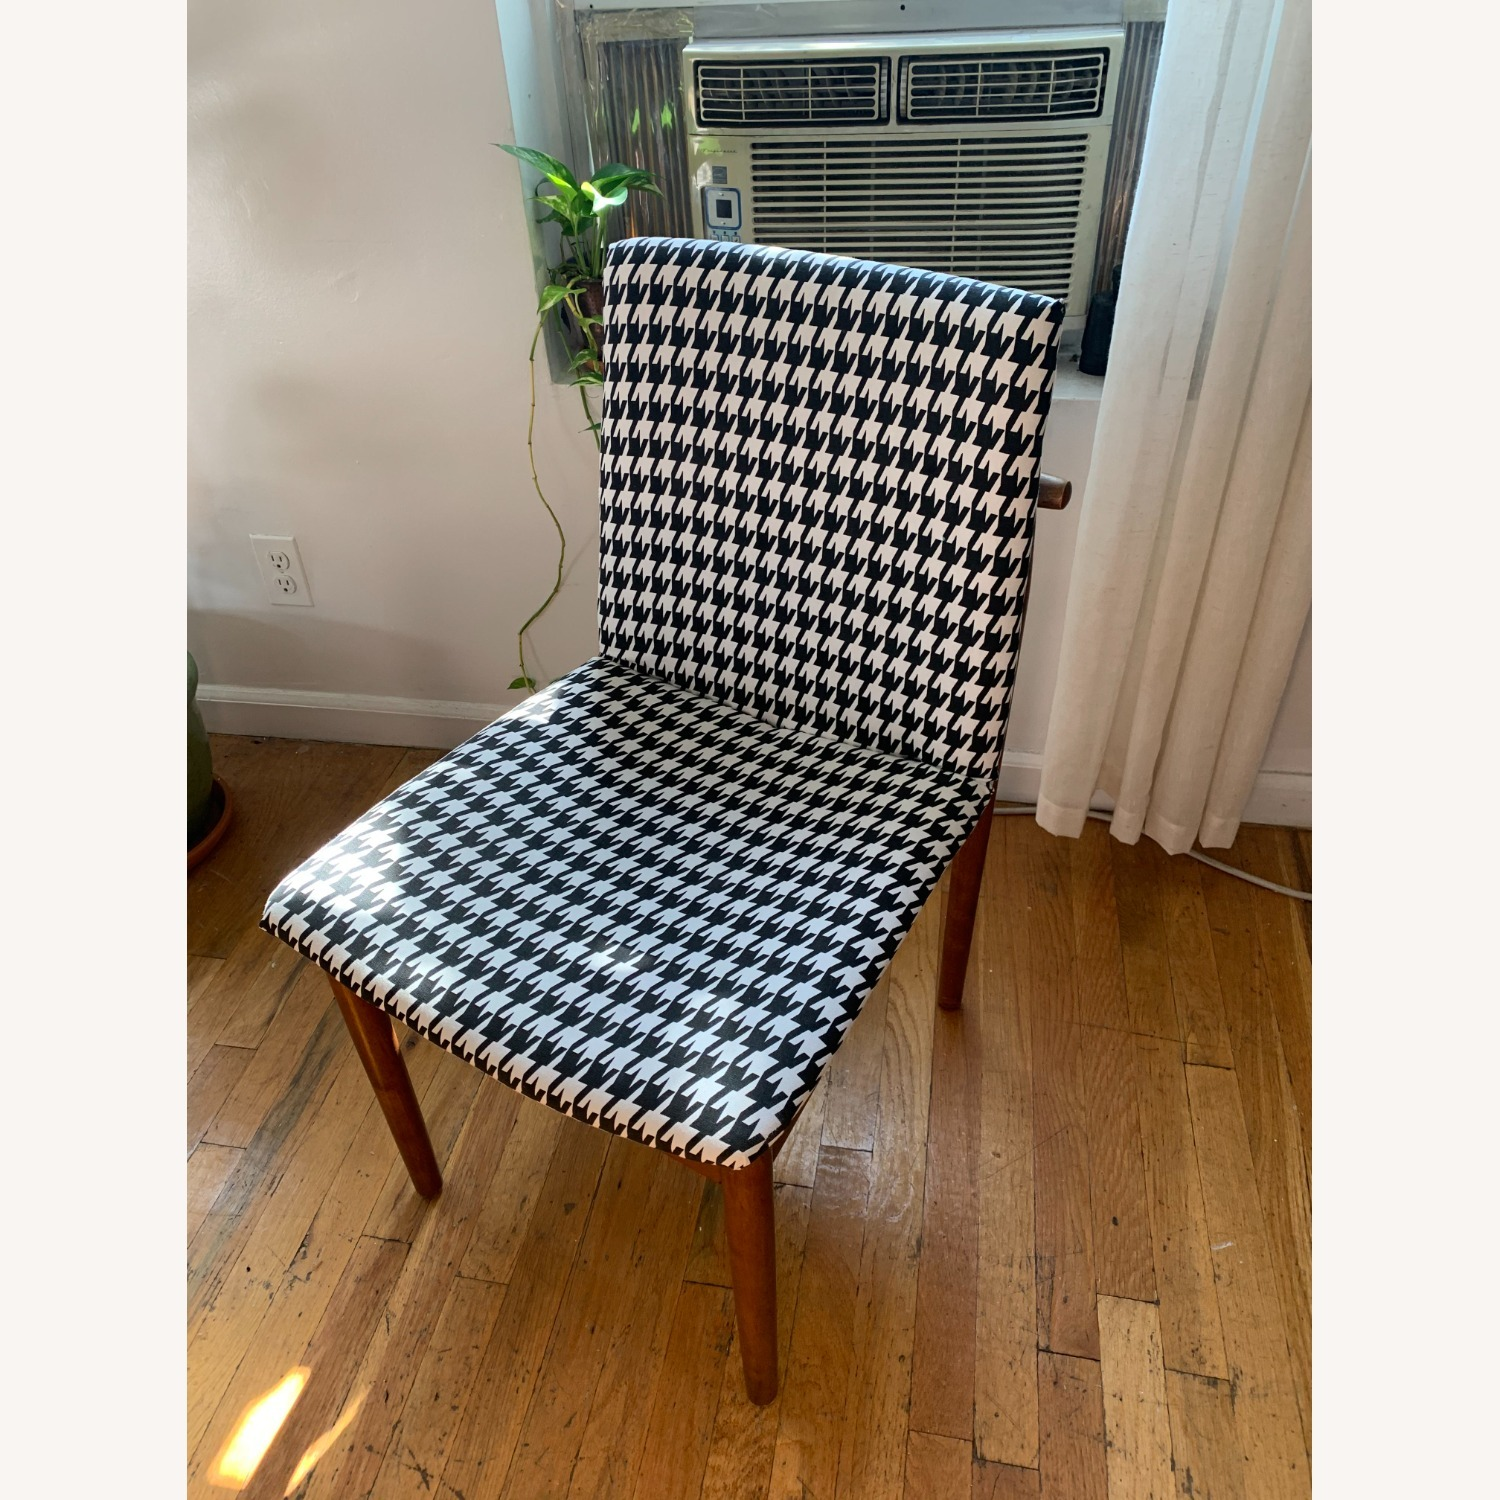 West Elm Houndstooth Customized Accent Chair - image-1